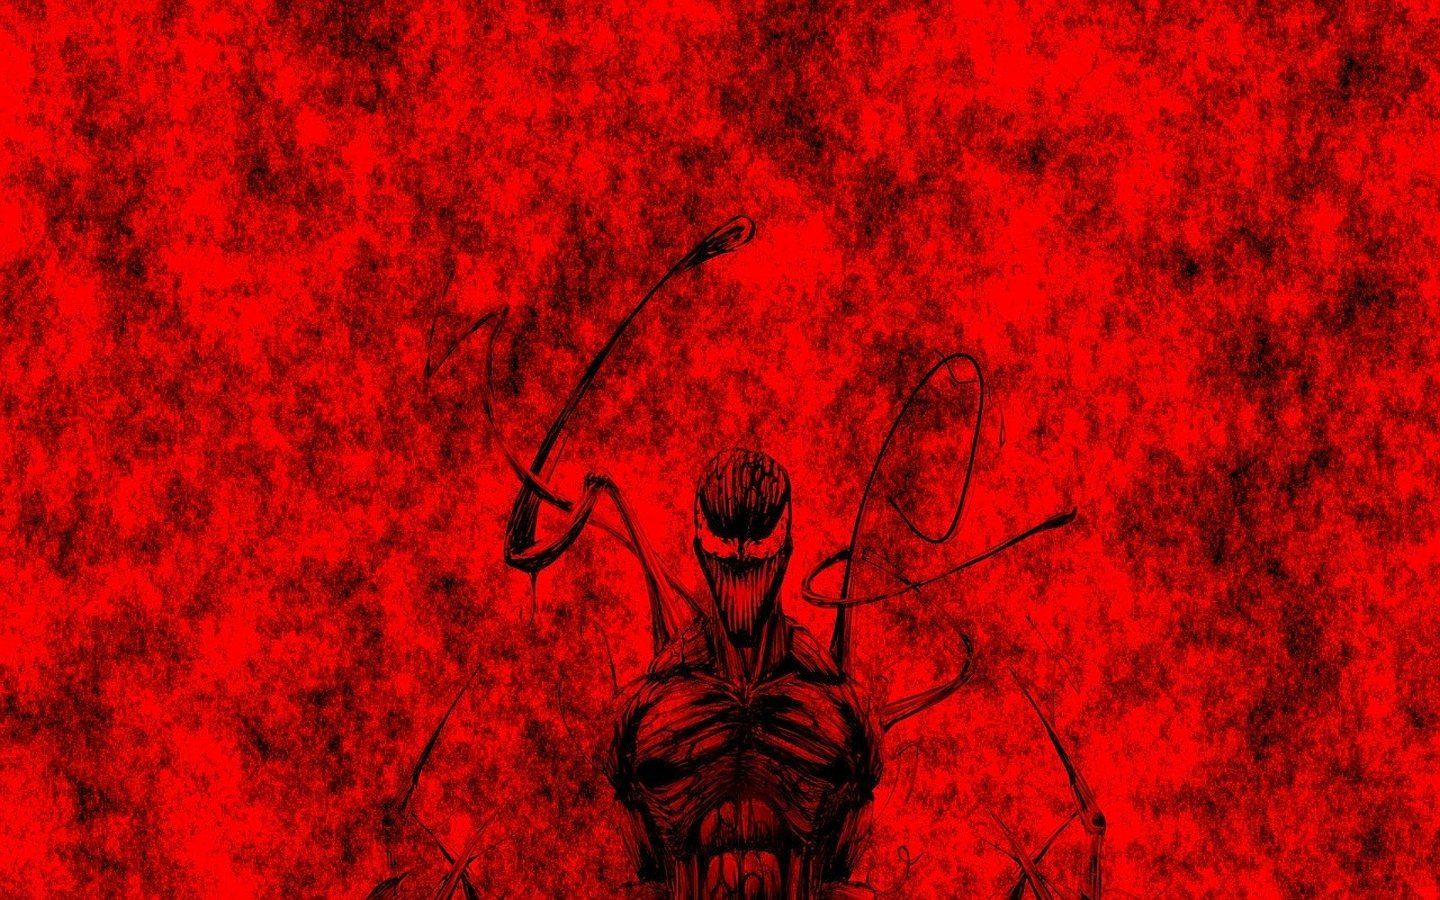 Black Spiderman Iphone Wallpaper Carnage Wallpaper And Background Image 1440x900 Id 663179